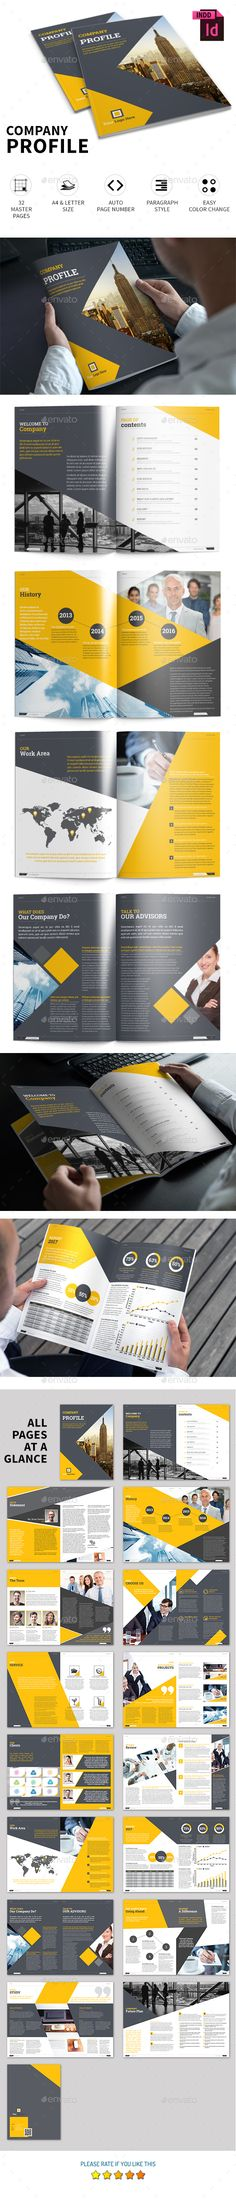 A5 Landscape Company Profile u2014 InDesign INDD #corporate u2022 Download - corporate profile template